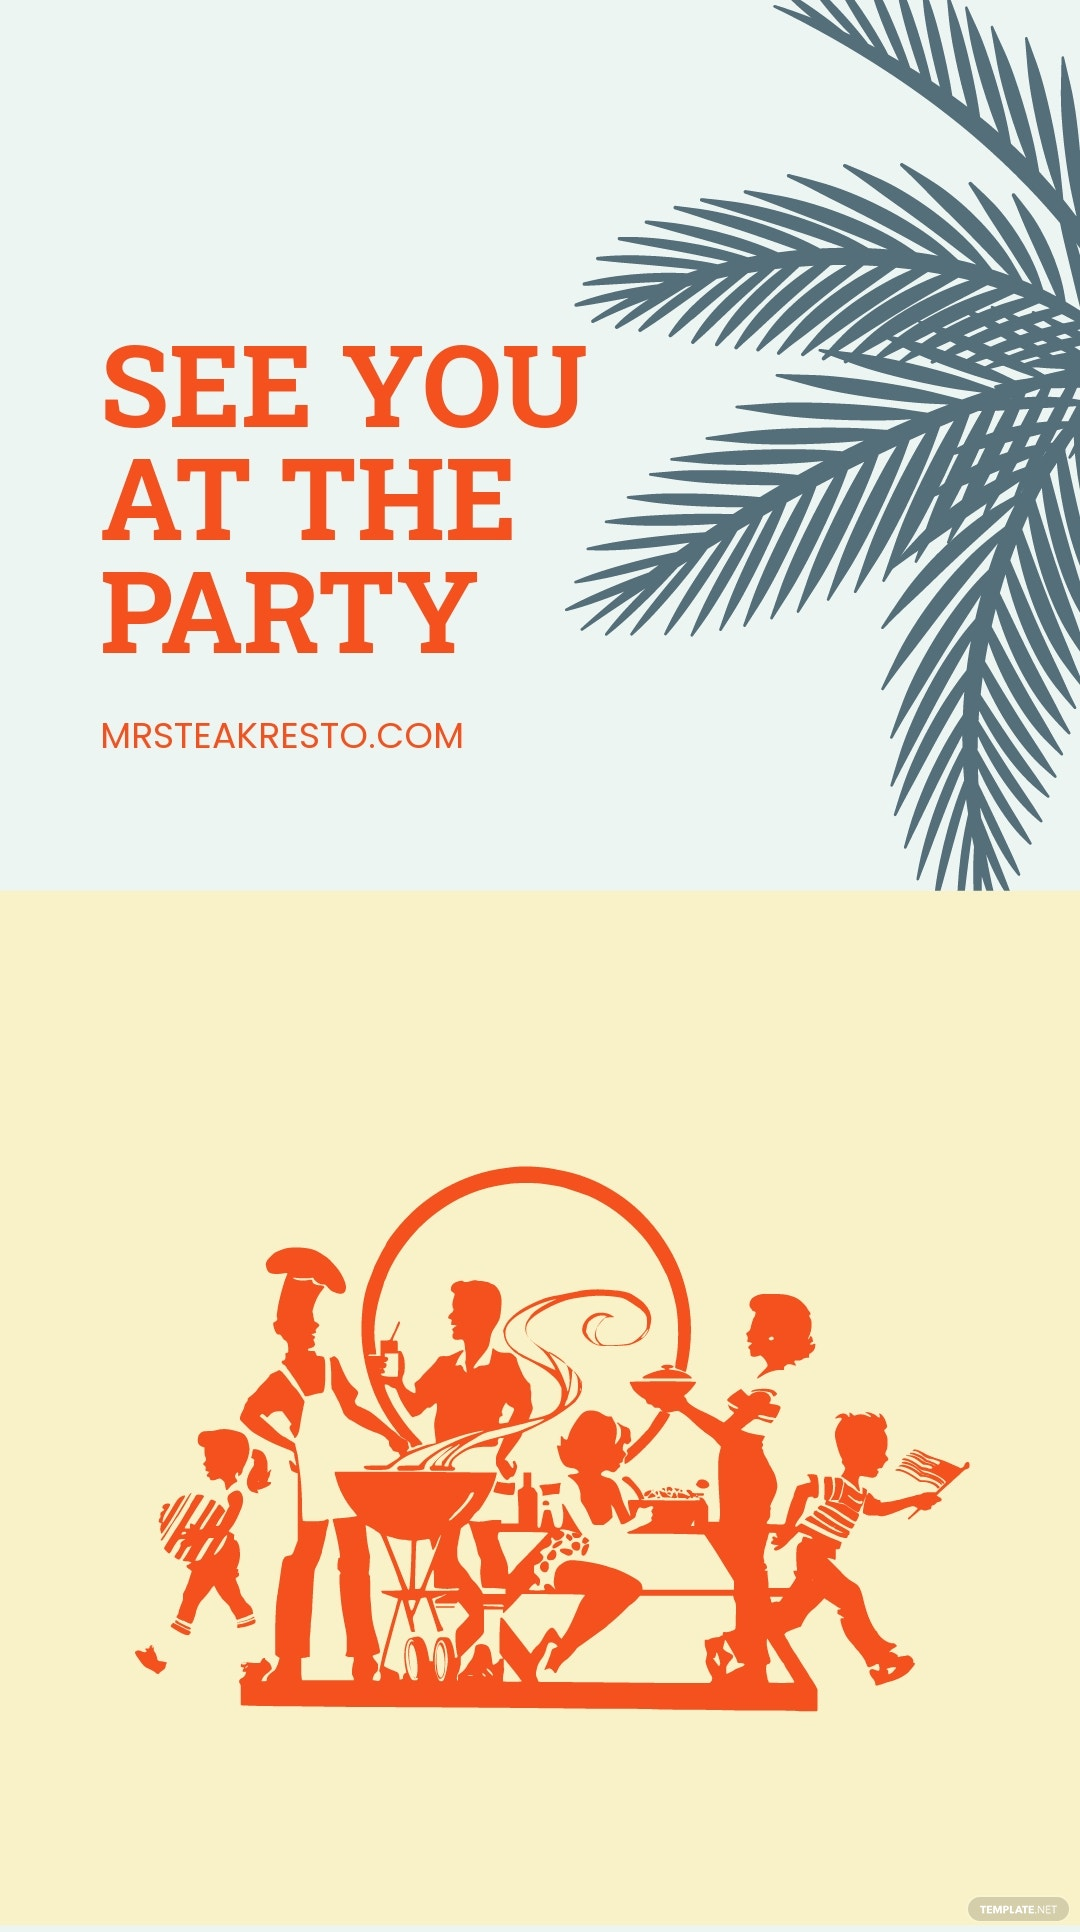 Bbq Beach Party Instagram Story Template 4.jpe